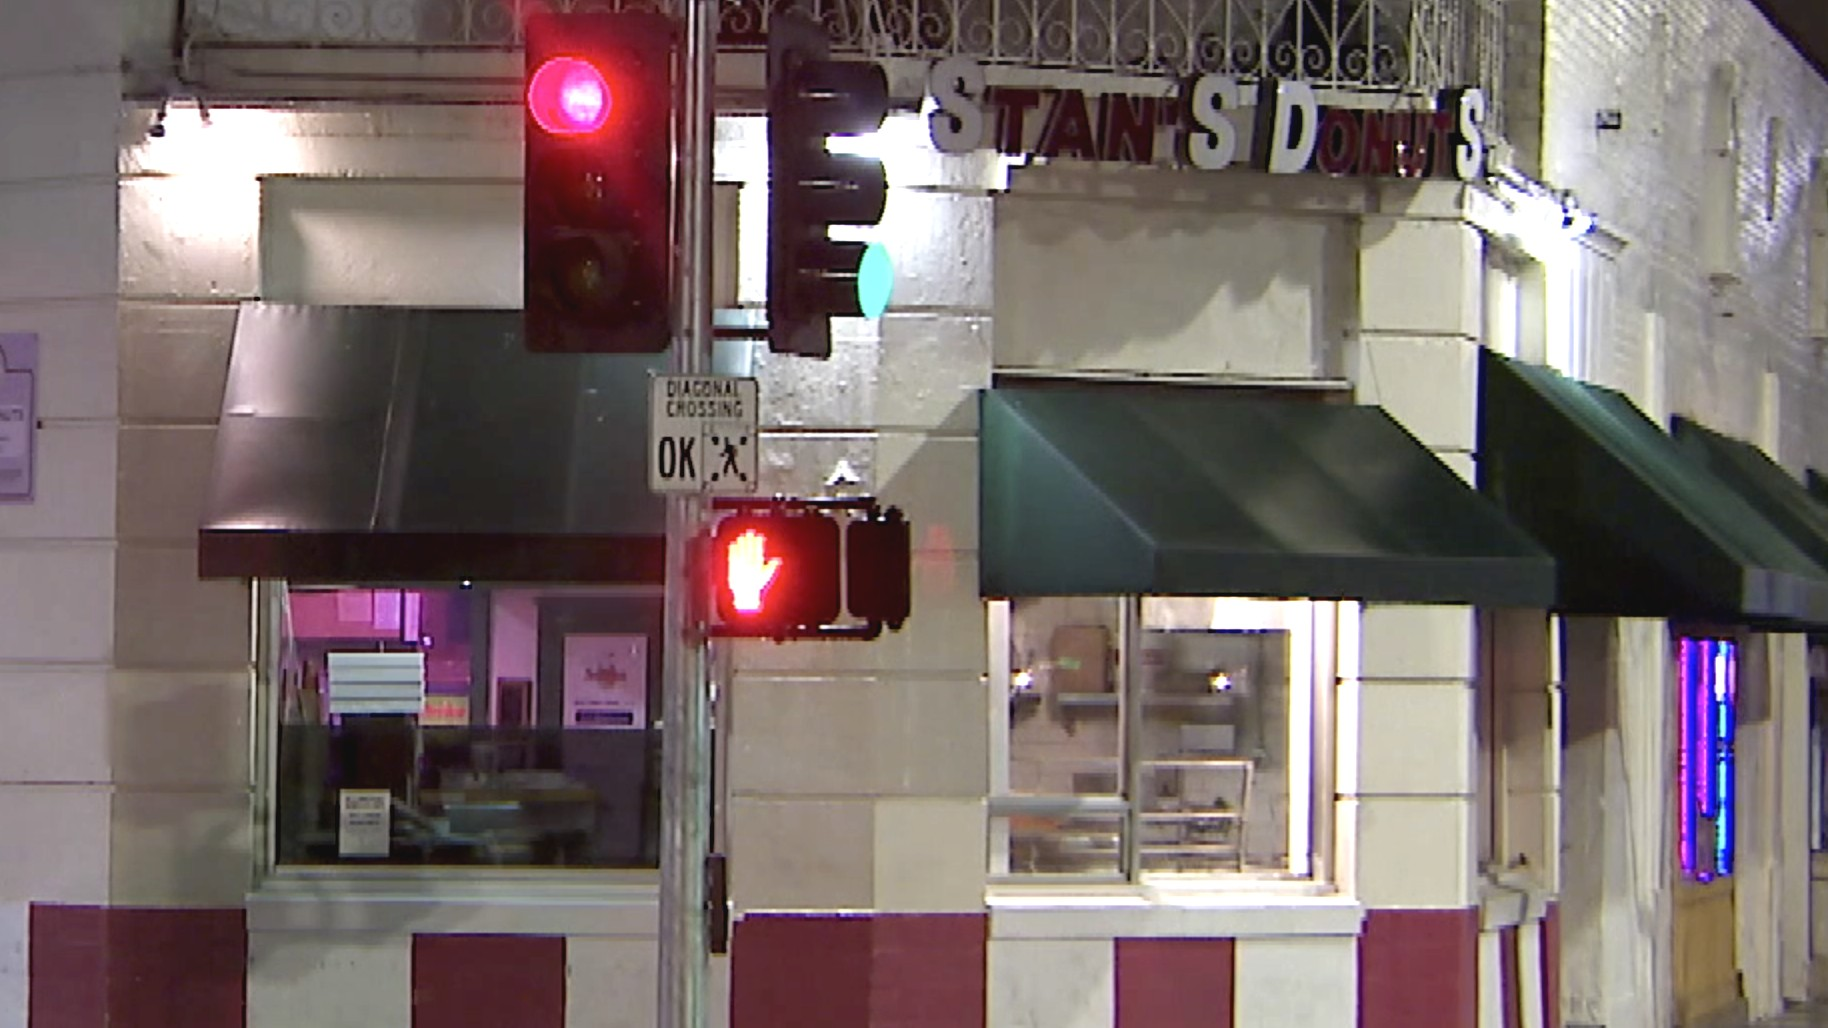 Stan's Donuts is seen on April 10, 2020, one day after its closing. (KTLA)